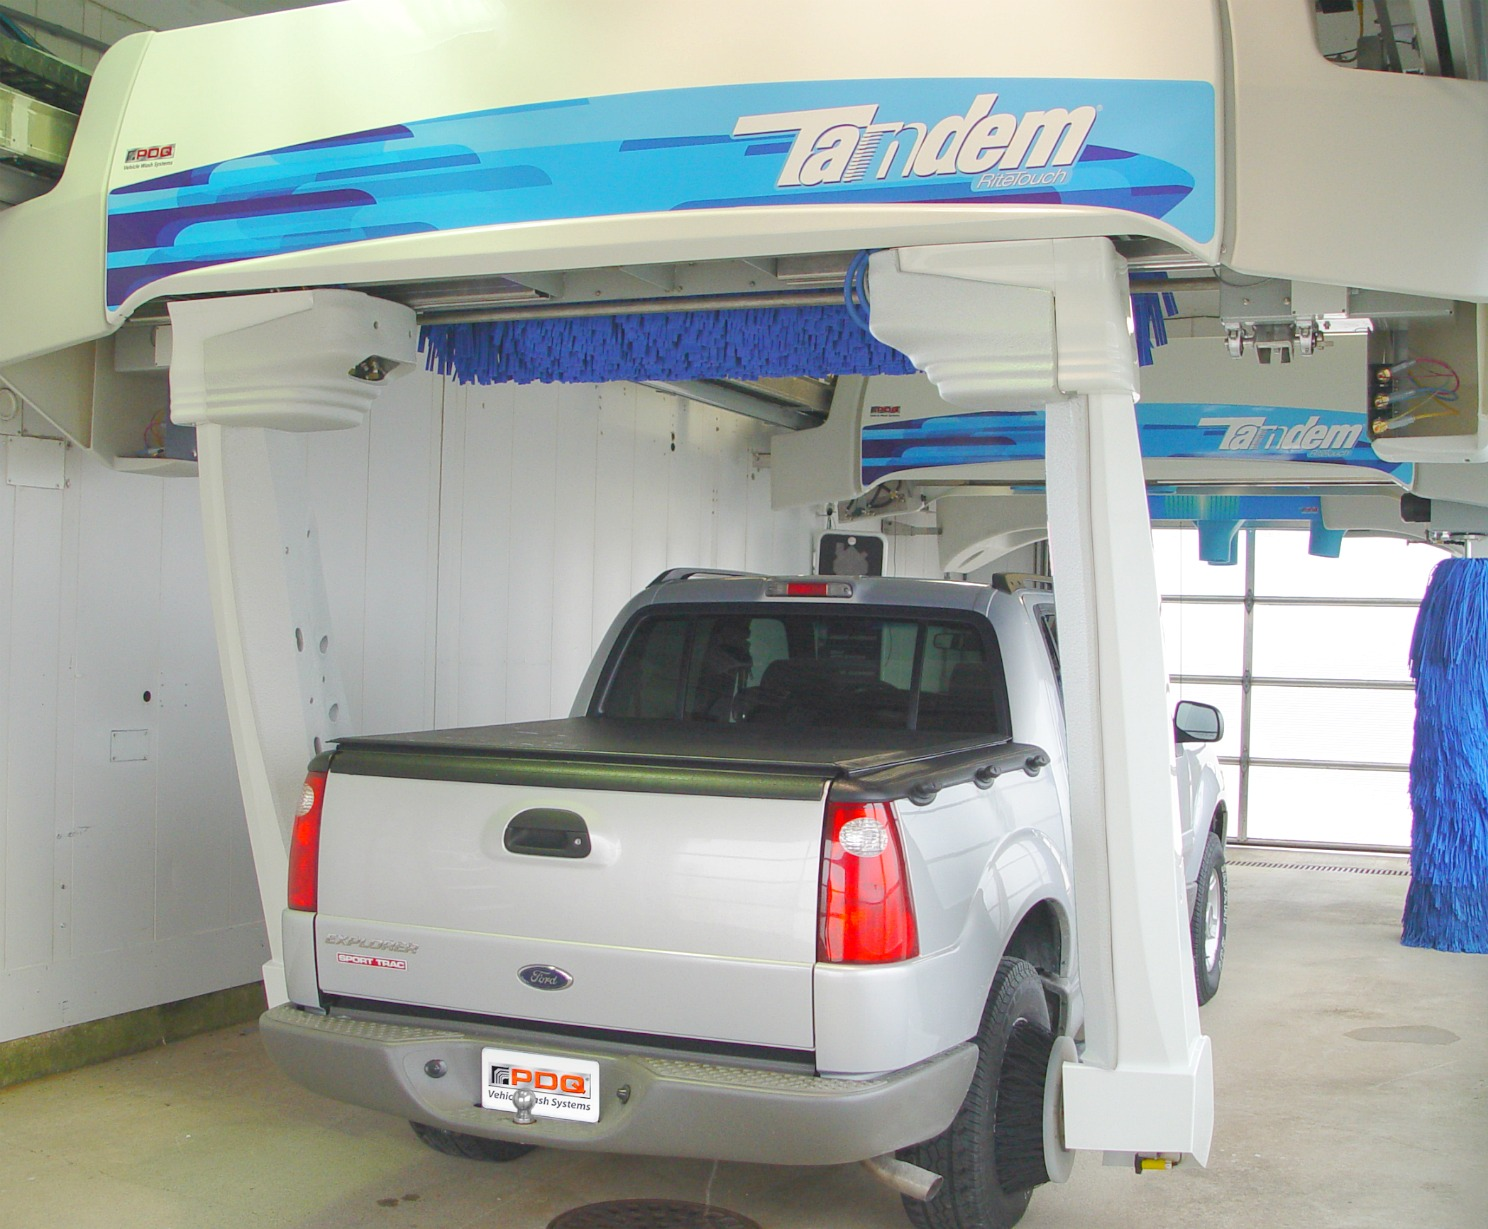 PDQ-Protouch-Tandem-Car-wash-Carwash-World-equipment-Australia